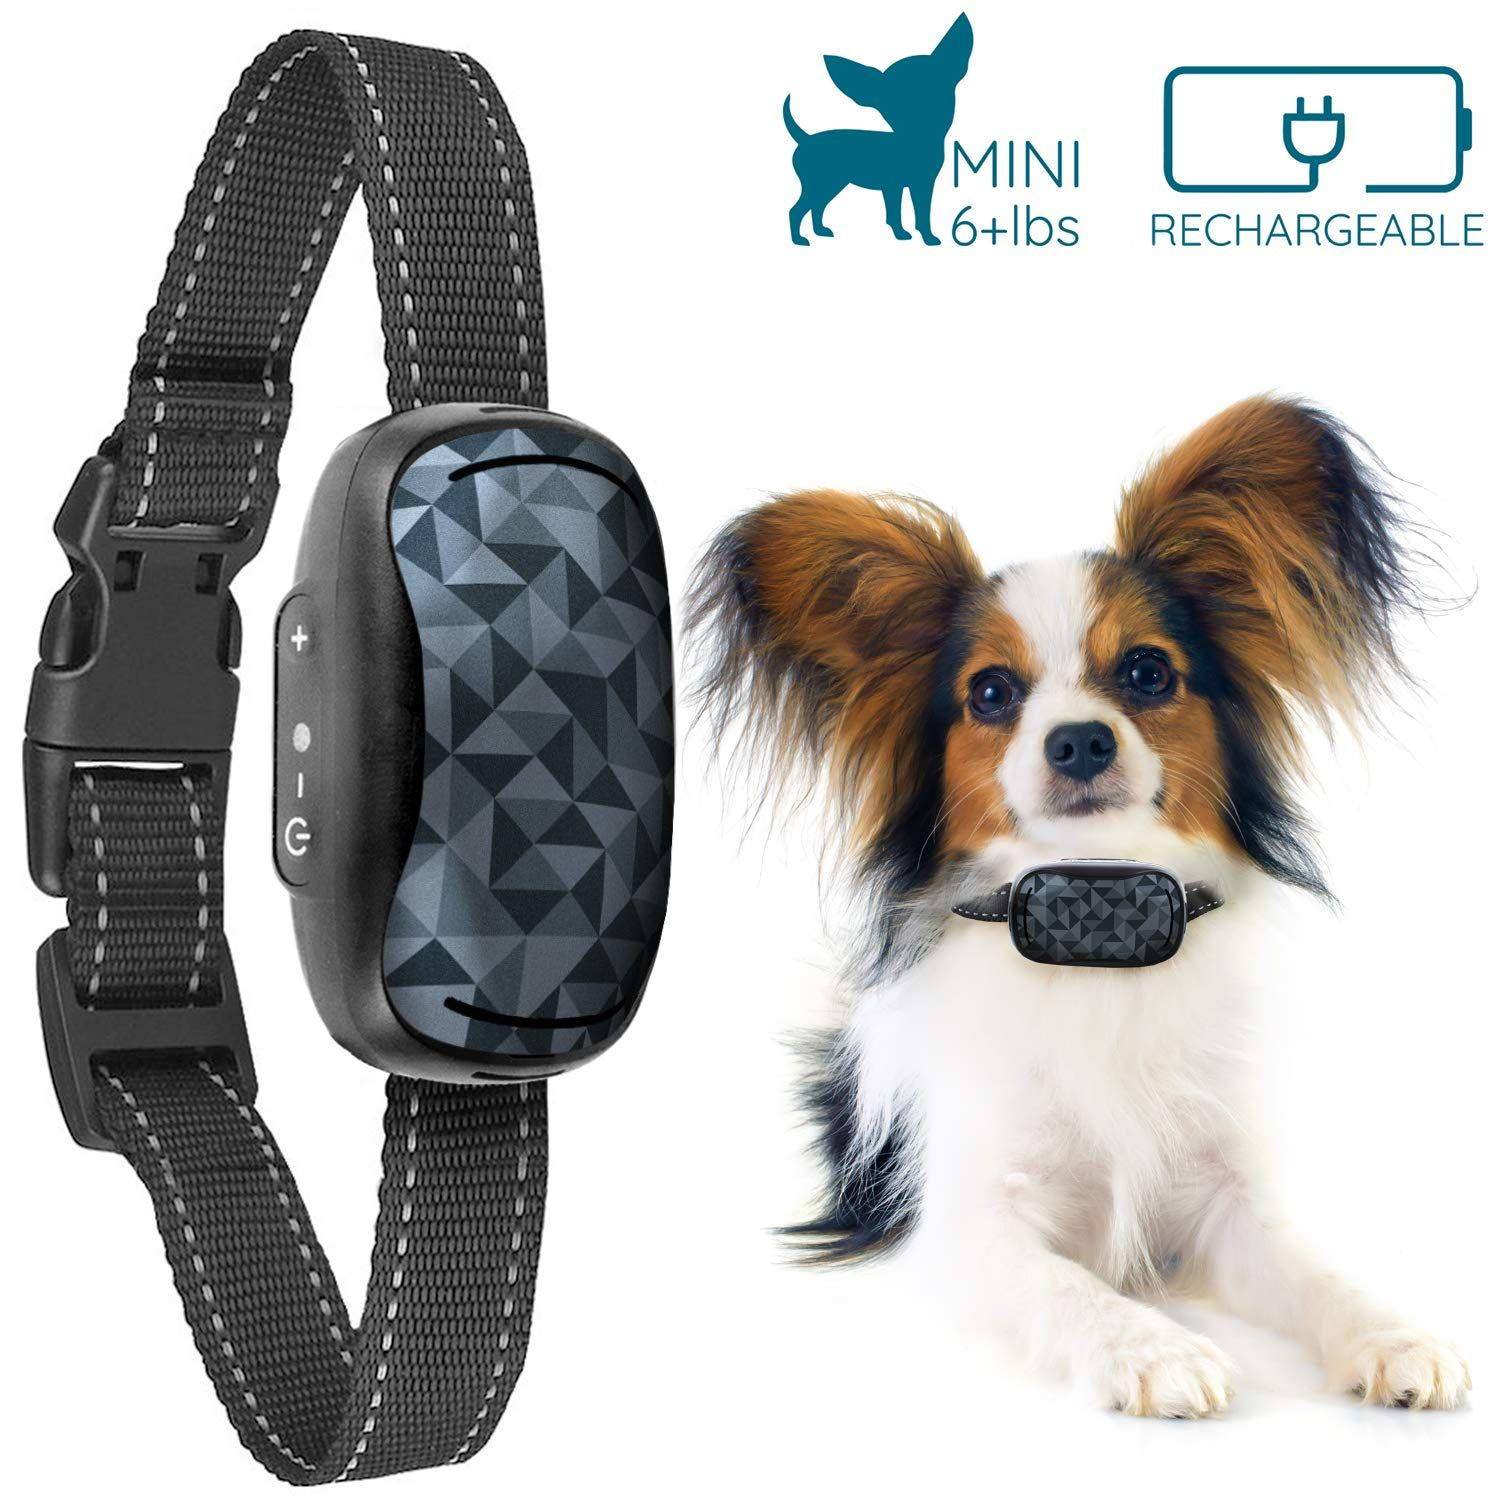 Goodboy Small Rechargeable Dog Bark Collar For Tiny To Medium Dogs